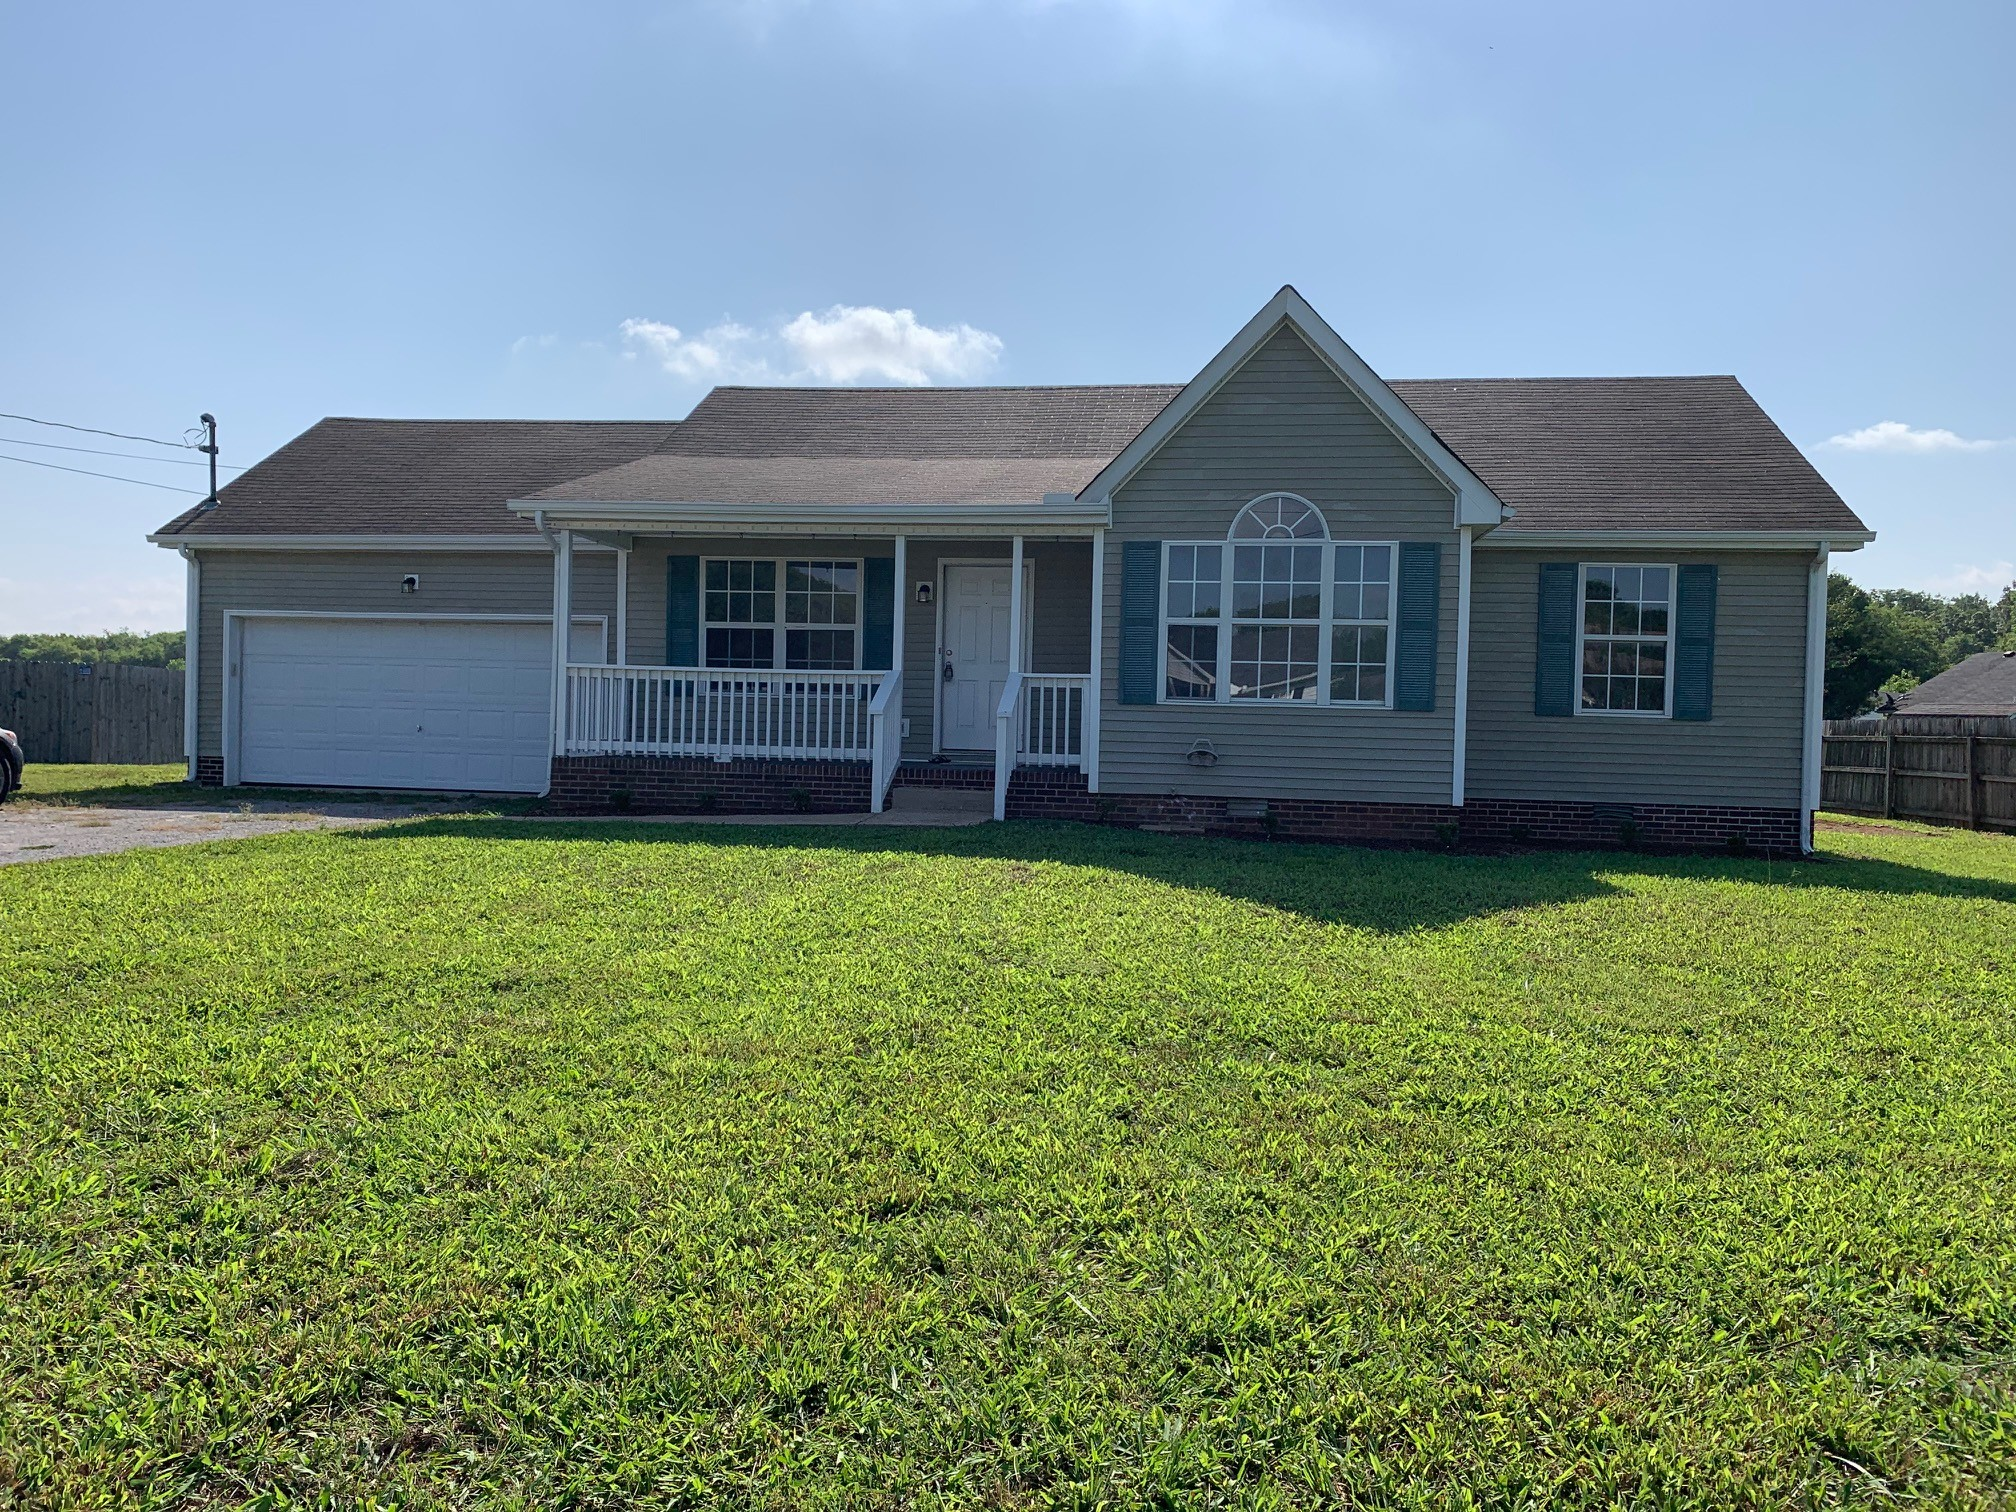 NEW FLOORING - FRESH PAINT - HIGH SOARING CEILING IN THE LIVING ROOM - REFINISHED CABINETS - TILE BACK SPLASH - NEW LIGHTING FIXTURES - TREY CEILING IN MASTER BEDROOM - DOUBLE CLOSETS IN MASTER BEDROOM - 2 CAR GARAGE - BACK DECK FOR GRILL OUTS - SPACIOUS BACK YARD -